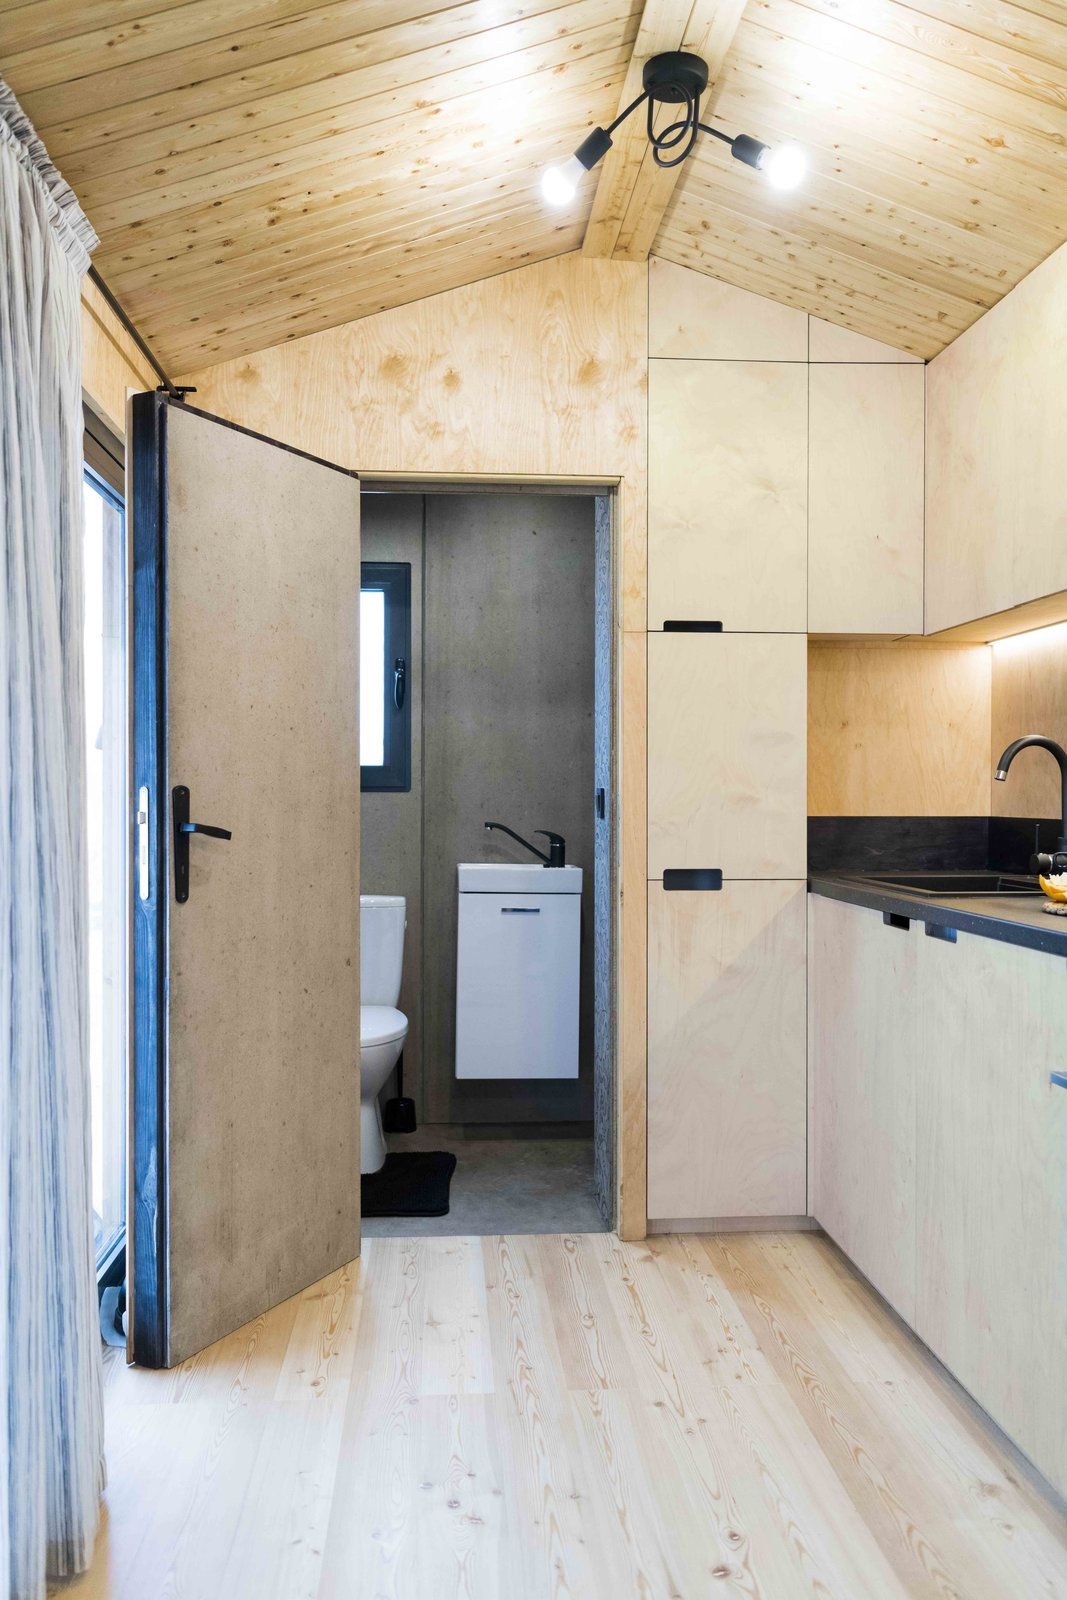 Bath Room, Ceiling Lighting, Wall Mount Sink, and Enclosed Shower Cement fibre boards bathroom  KOLELIBA Family Tiny House